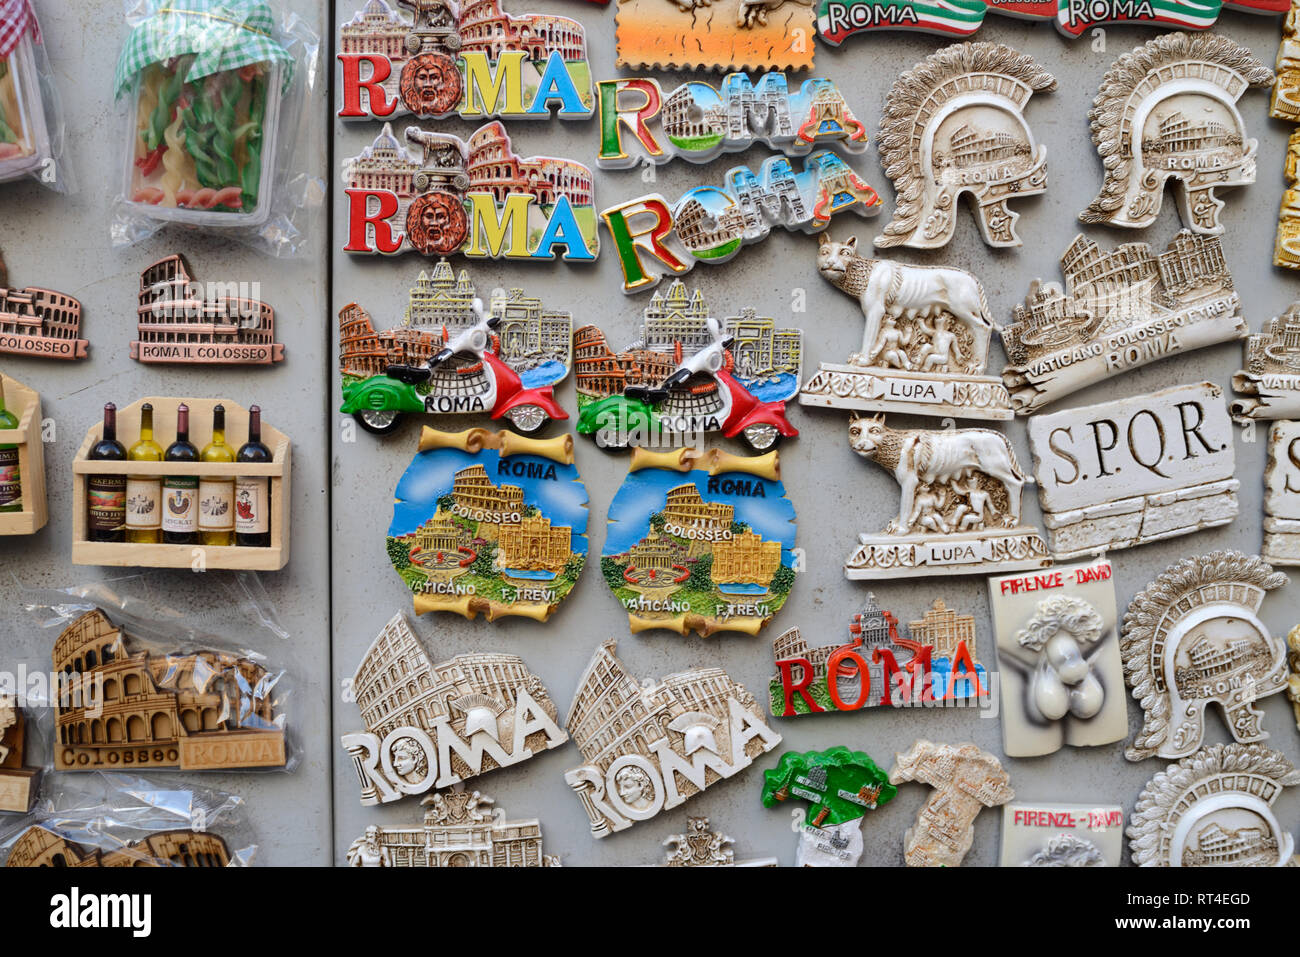 Fridge Magnets or Souvenirs of Roman Landmarks for Sale in Gift Shop Rome Italy - Stock Image